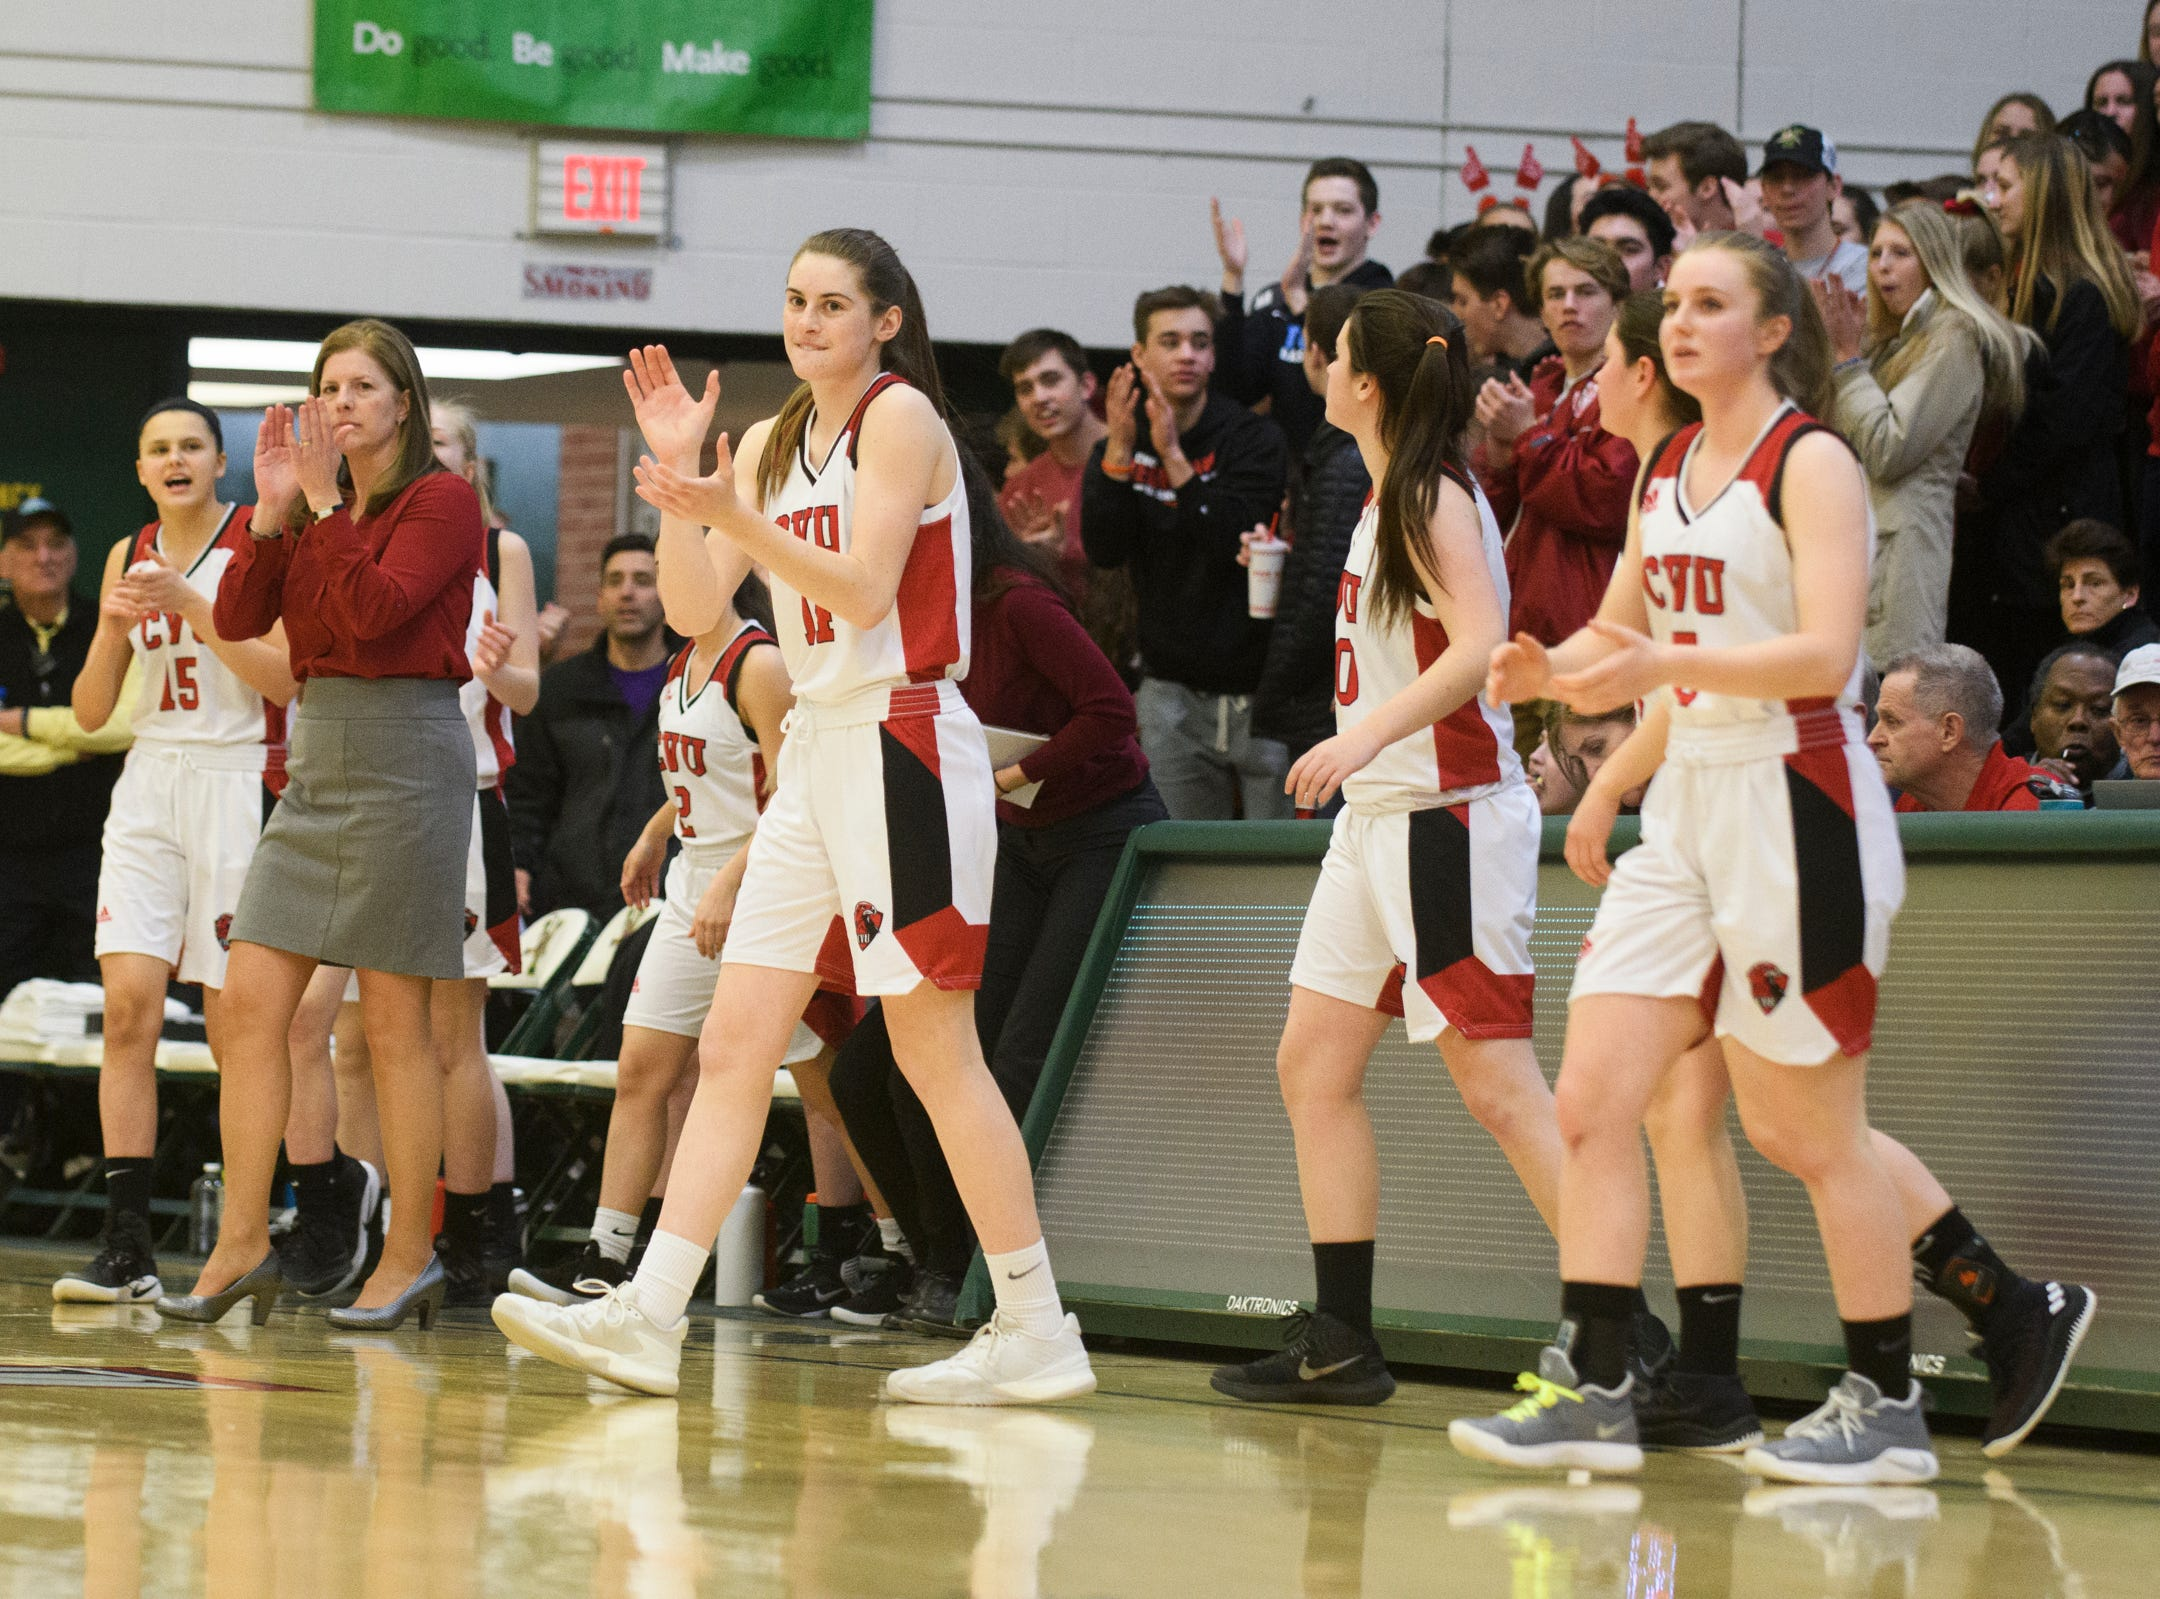 The CVU bench cheers for the team on the court during the girls semifinal basketball game between the Rice Green Knights and the Champlain Valley Union Redhawks at Patrick Gym on Wednesday nigh March 6, 2019 in Burlington, Vermont.